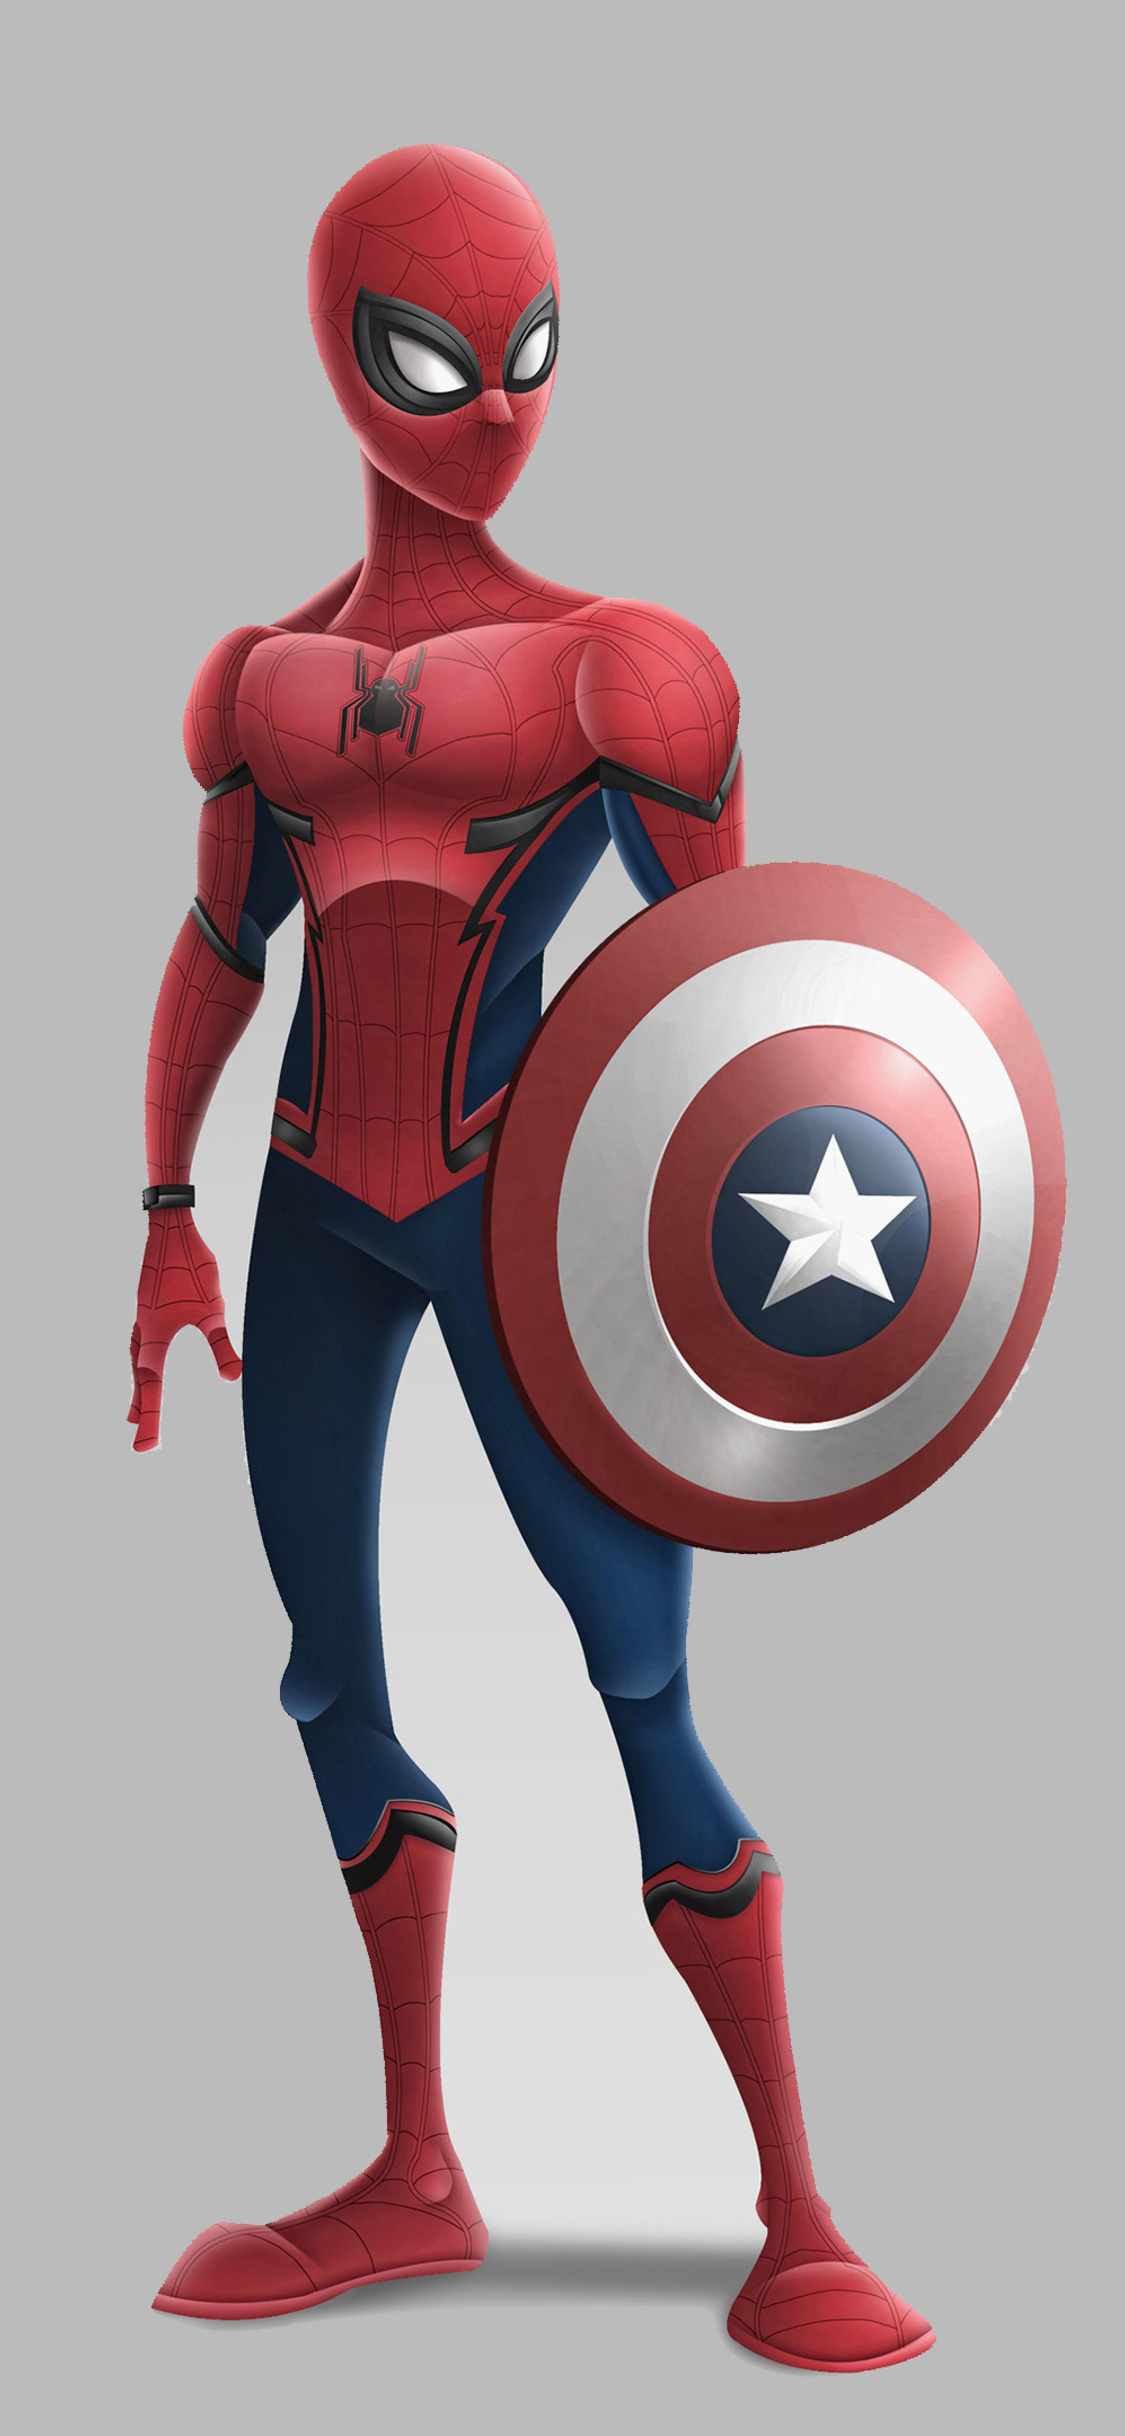 1125x2436 Spiderman With Captain America Shield Iphone Xs Iphone 10